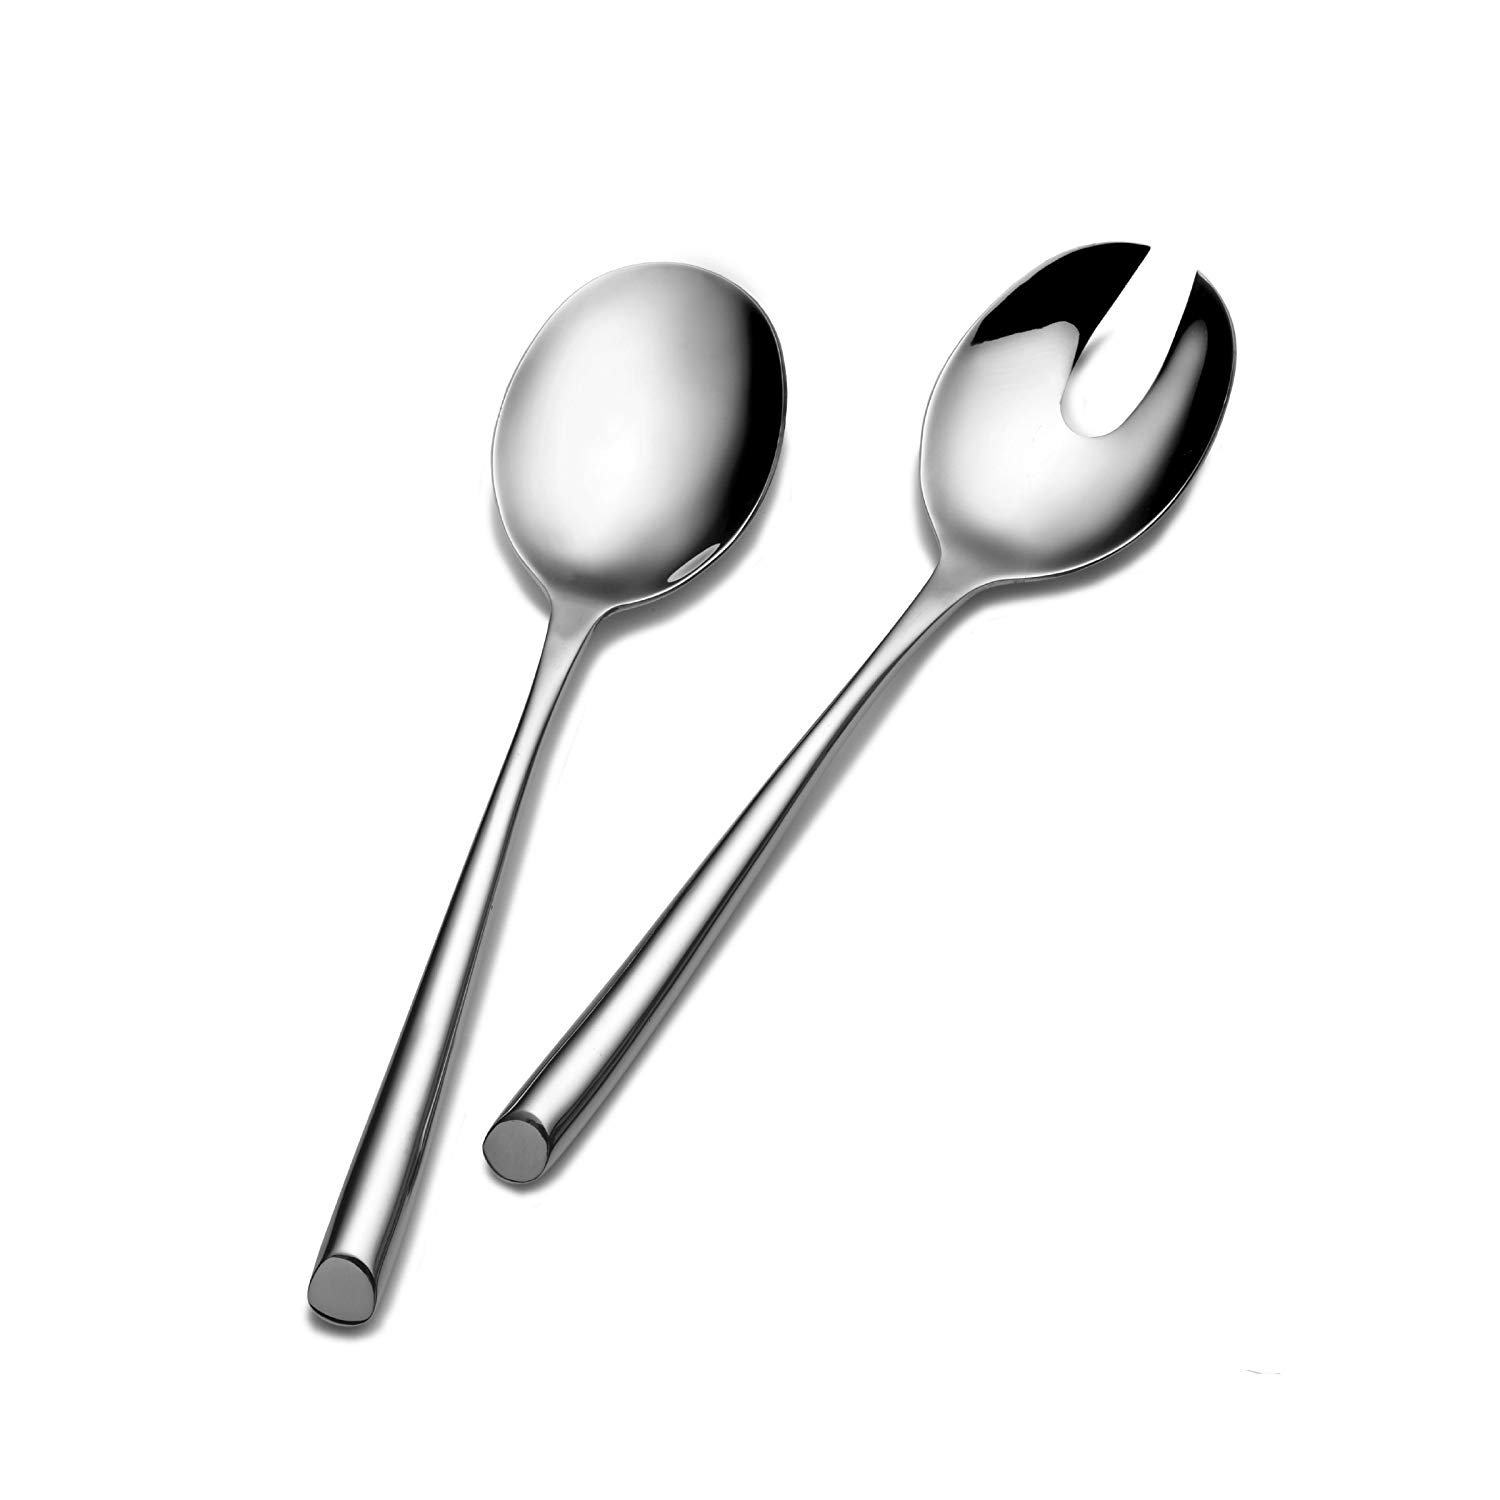 HomeExpress 2-Piece 11 Inch Heavy Duty 18/10 Stainless Steel Salad Spoon Fork Serving Set